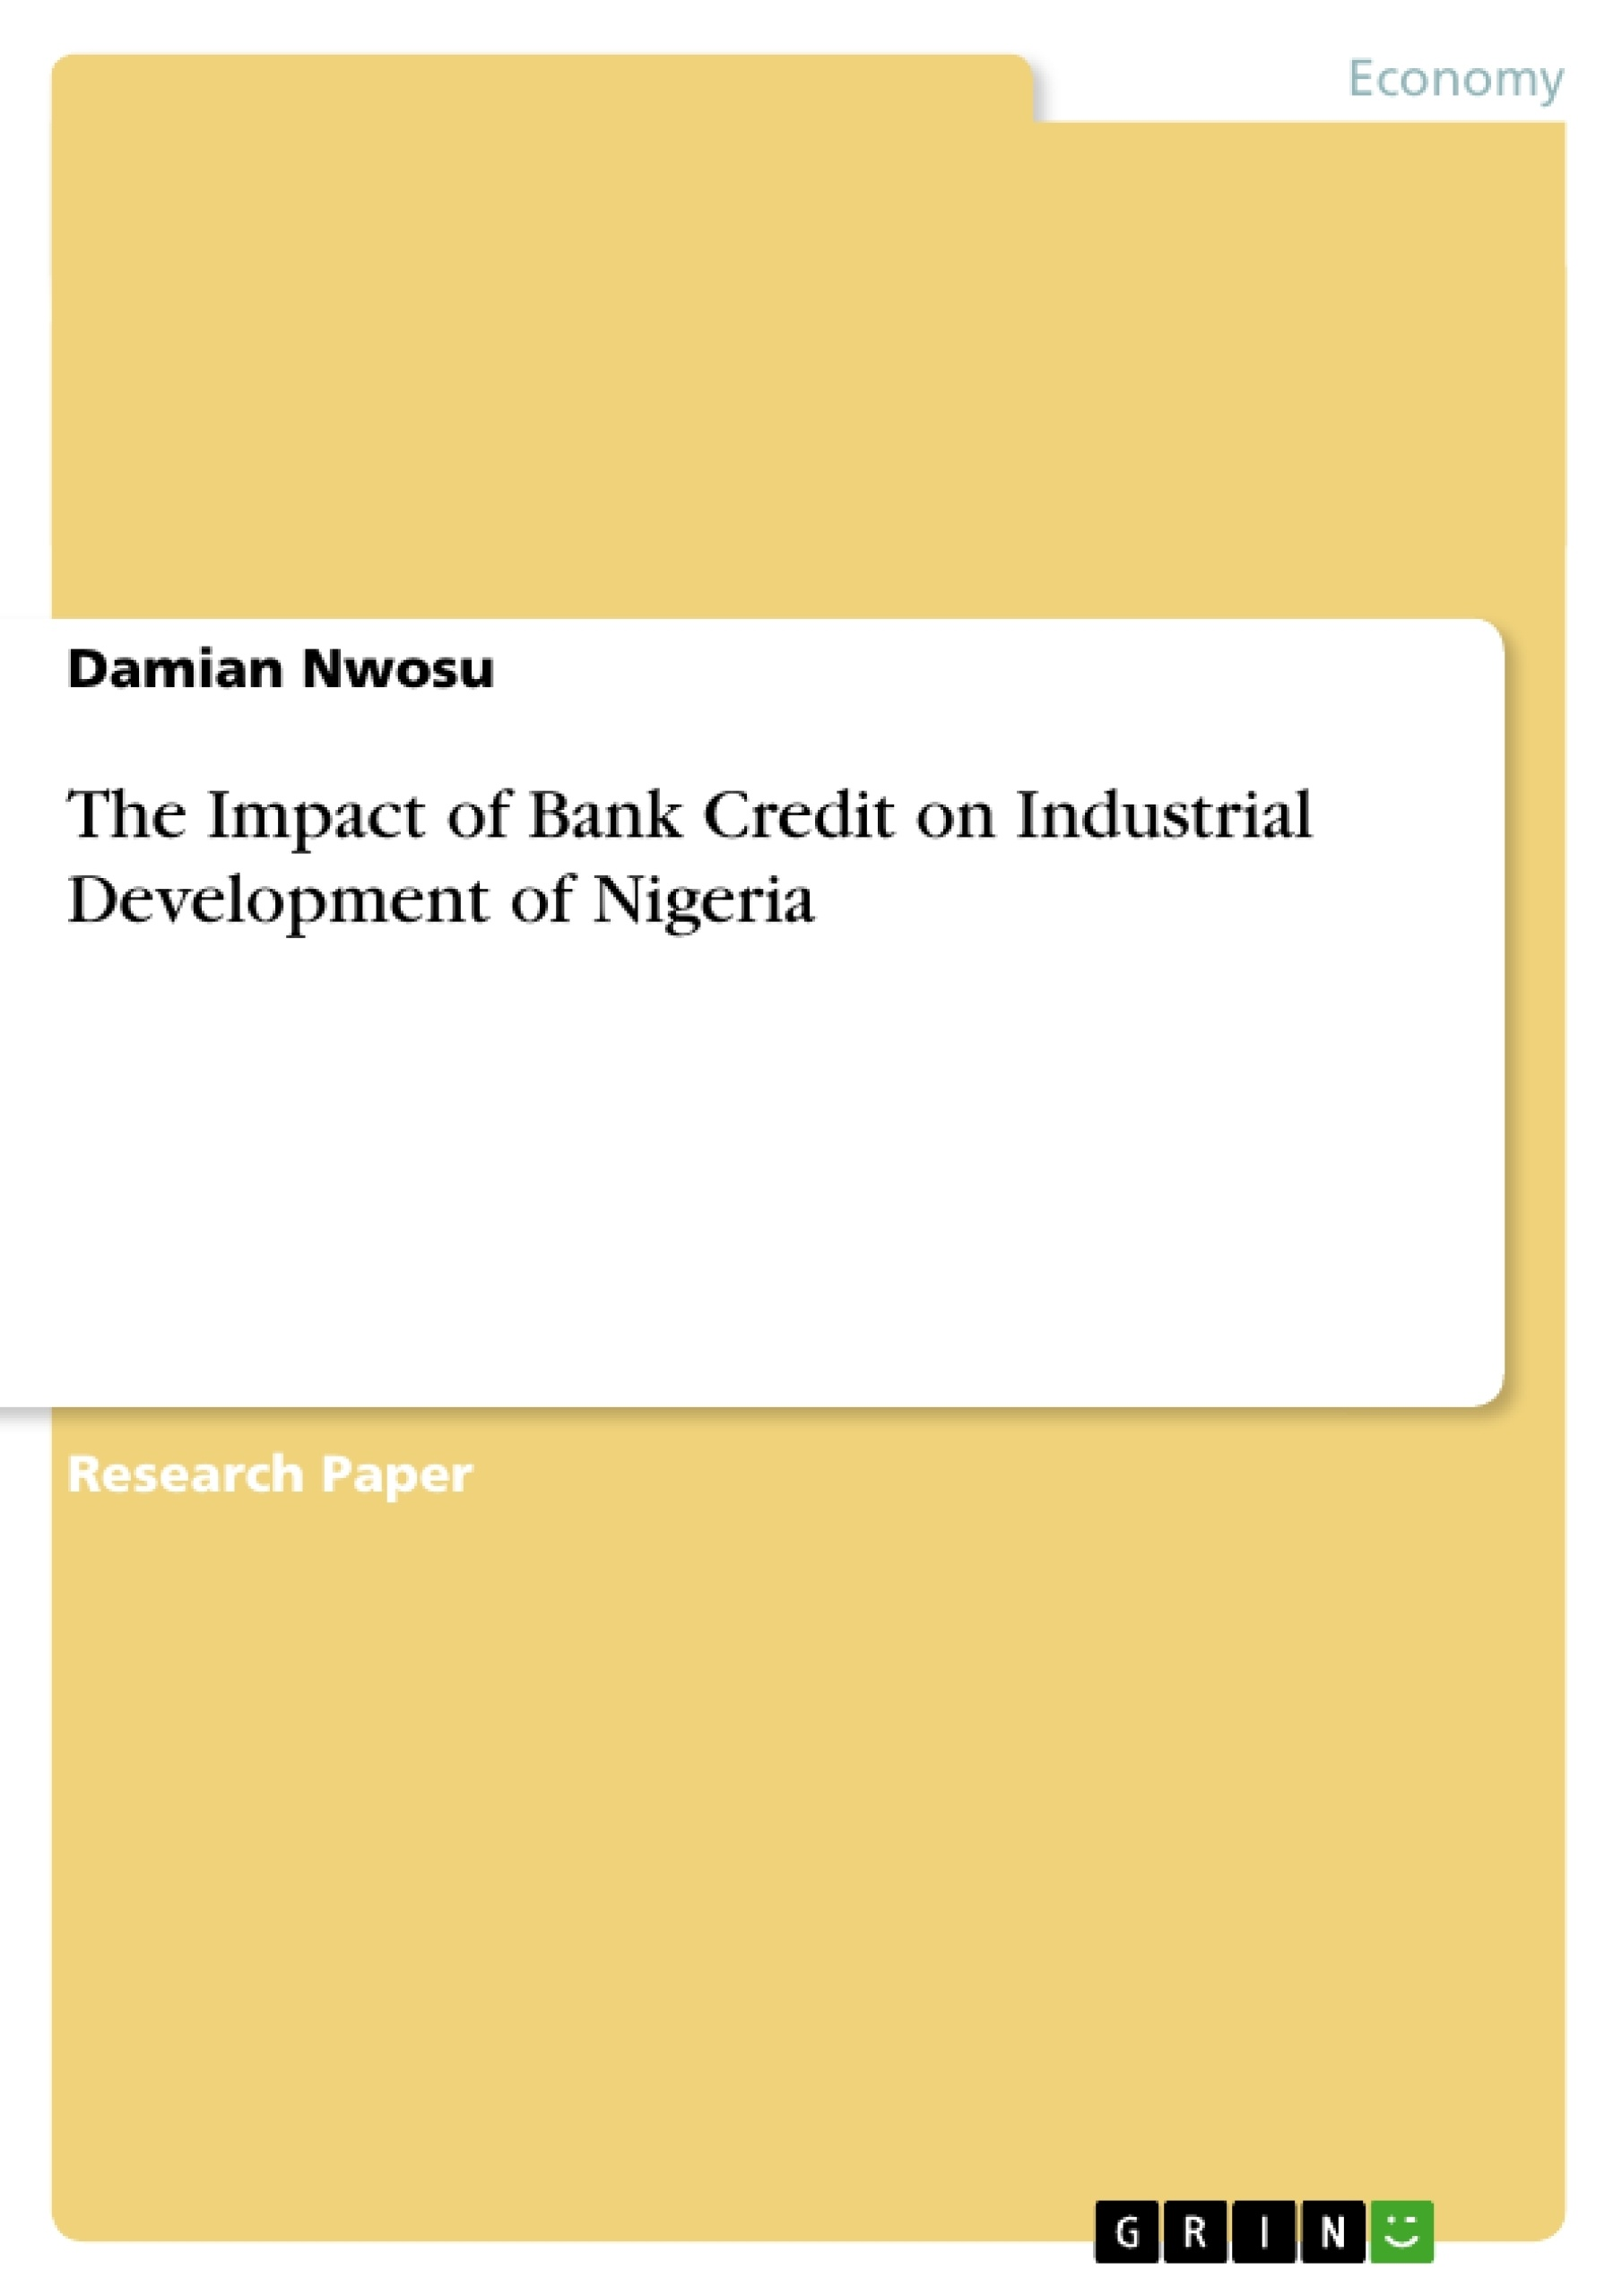 Title: The Impact of Bank Credit on Industrial Development of Nigeria